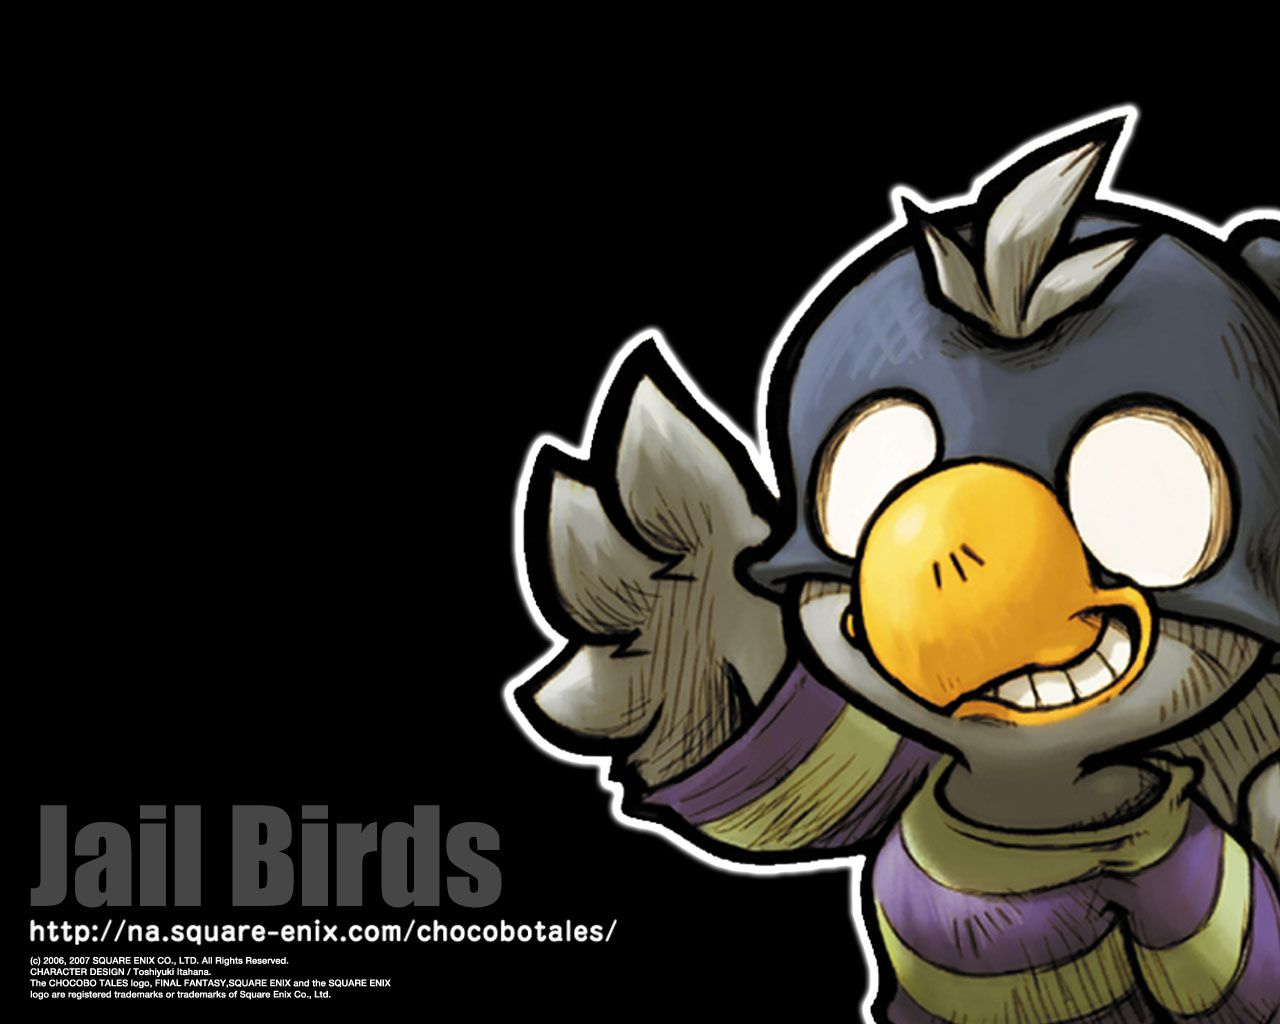 Final Fantasy Fables Chocobo Tales Wallpapers The Final